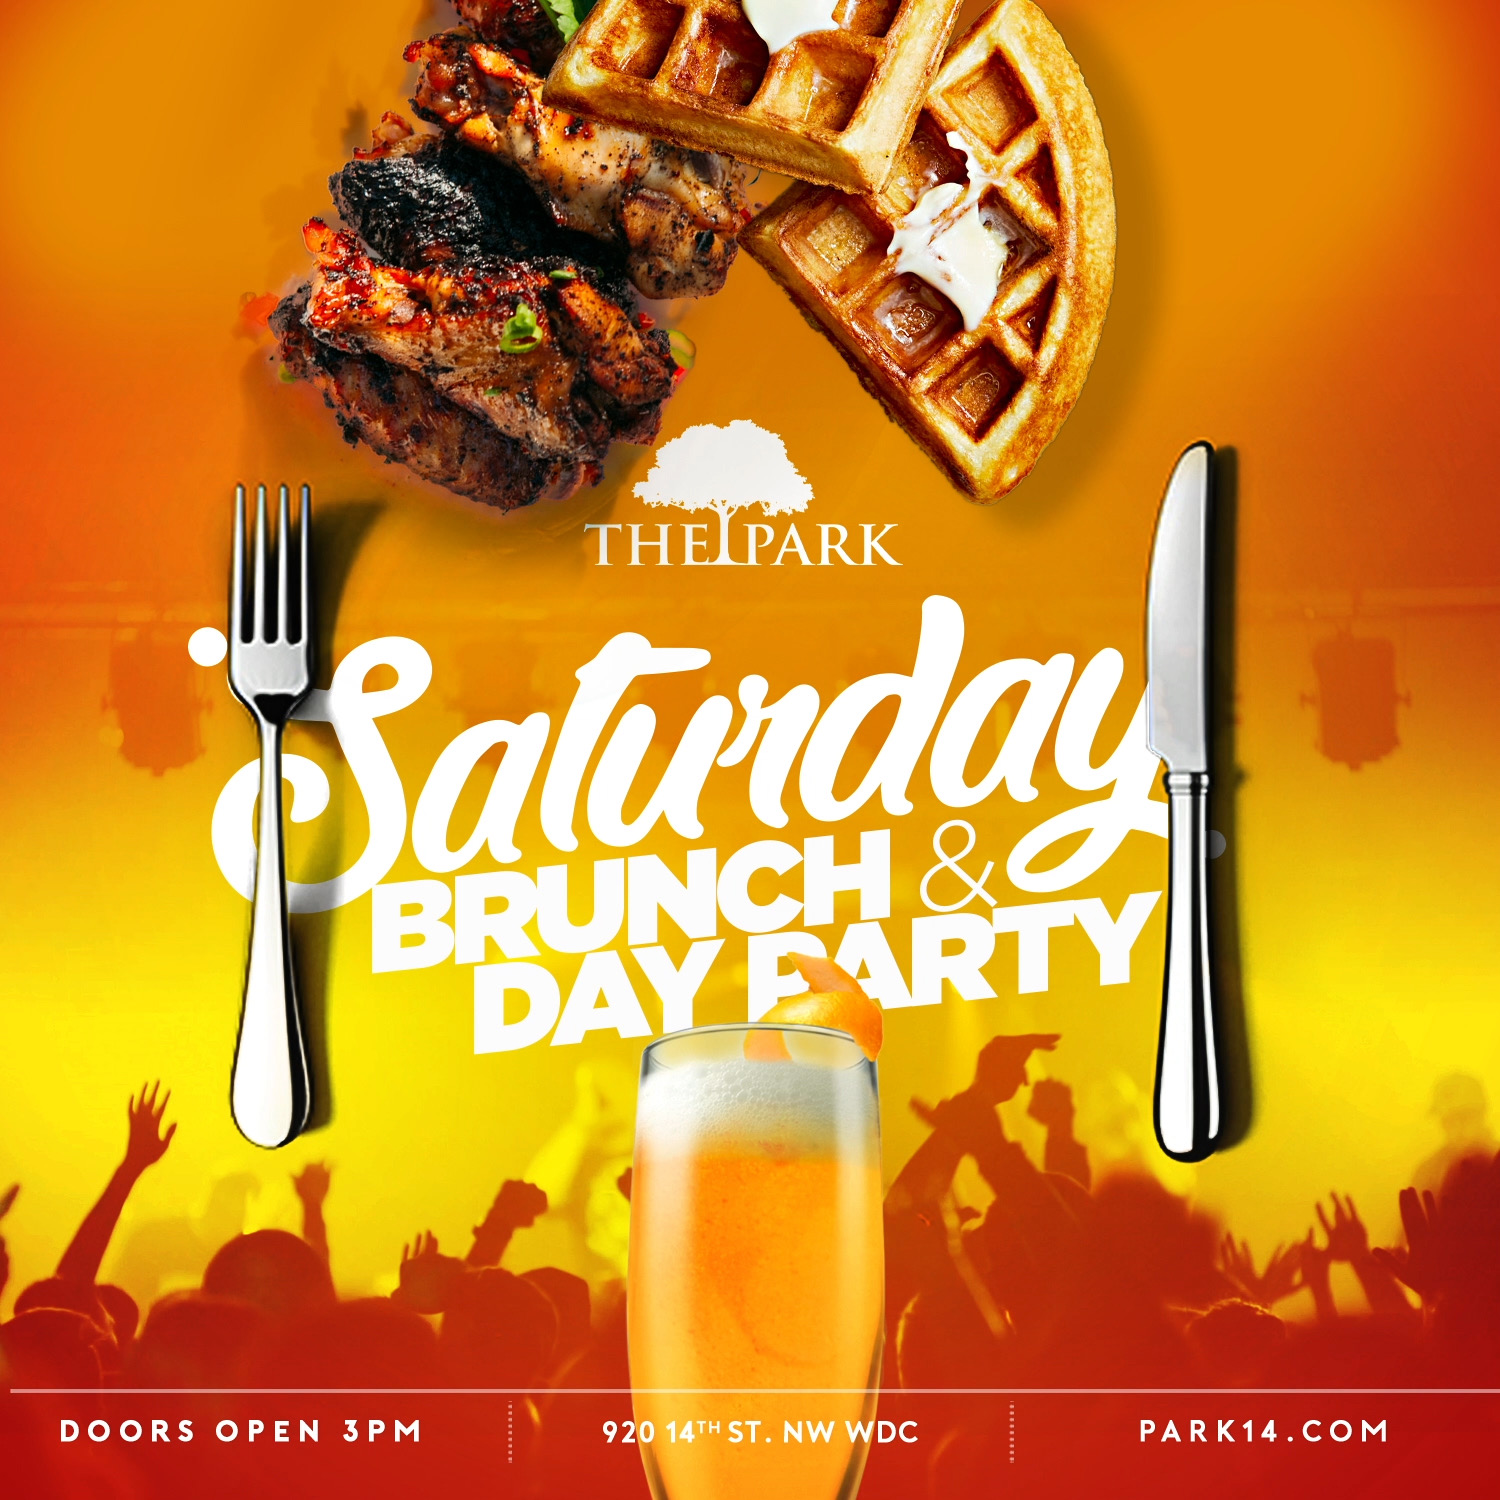 Saturday Brunch & Day Party copy.jpeg